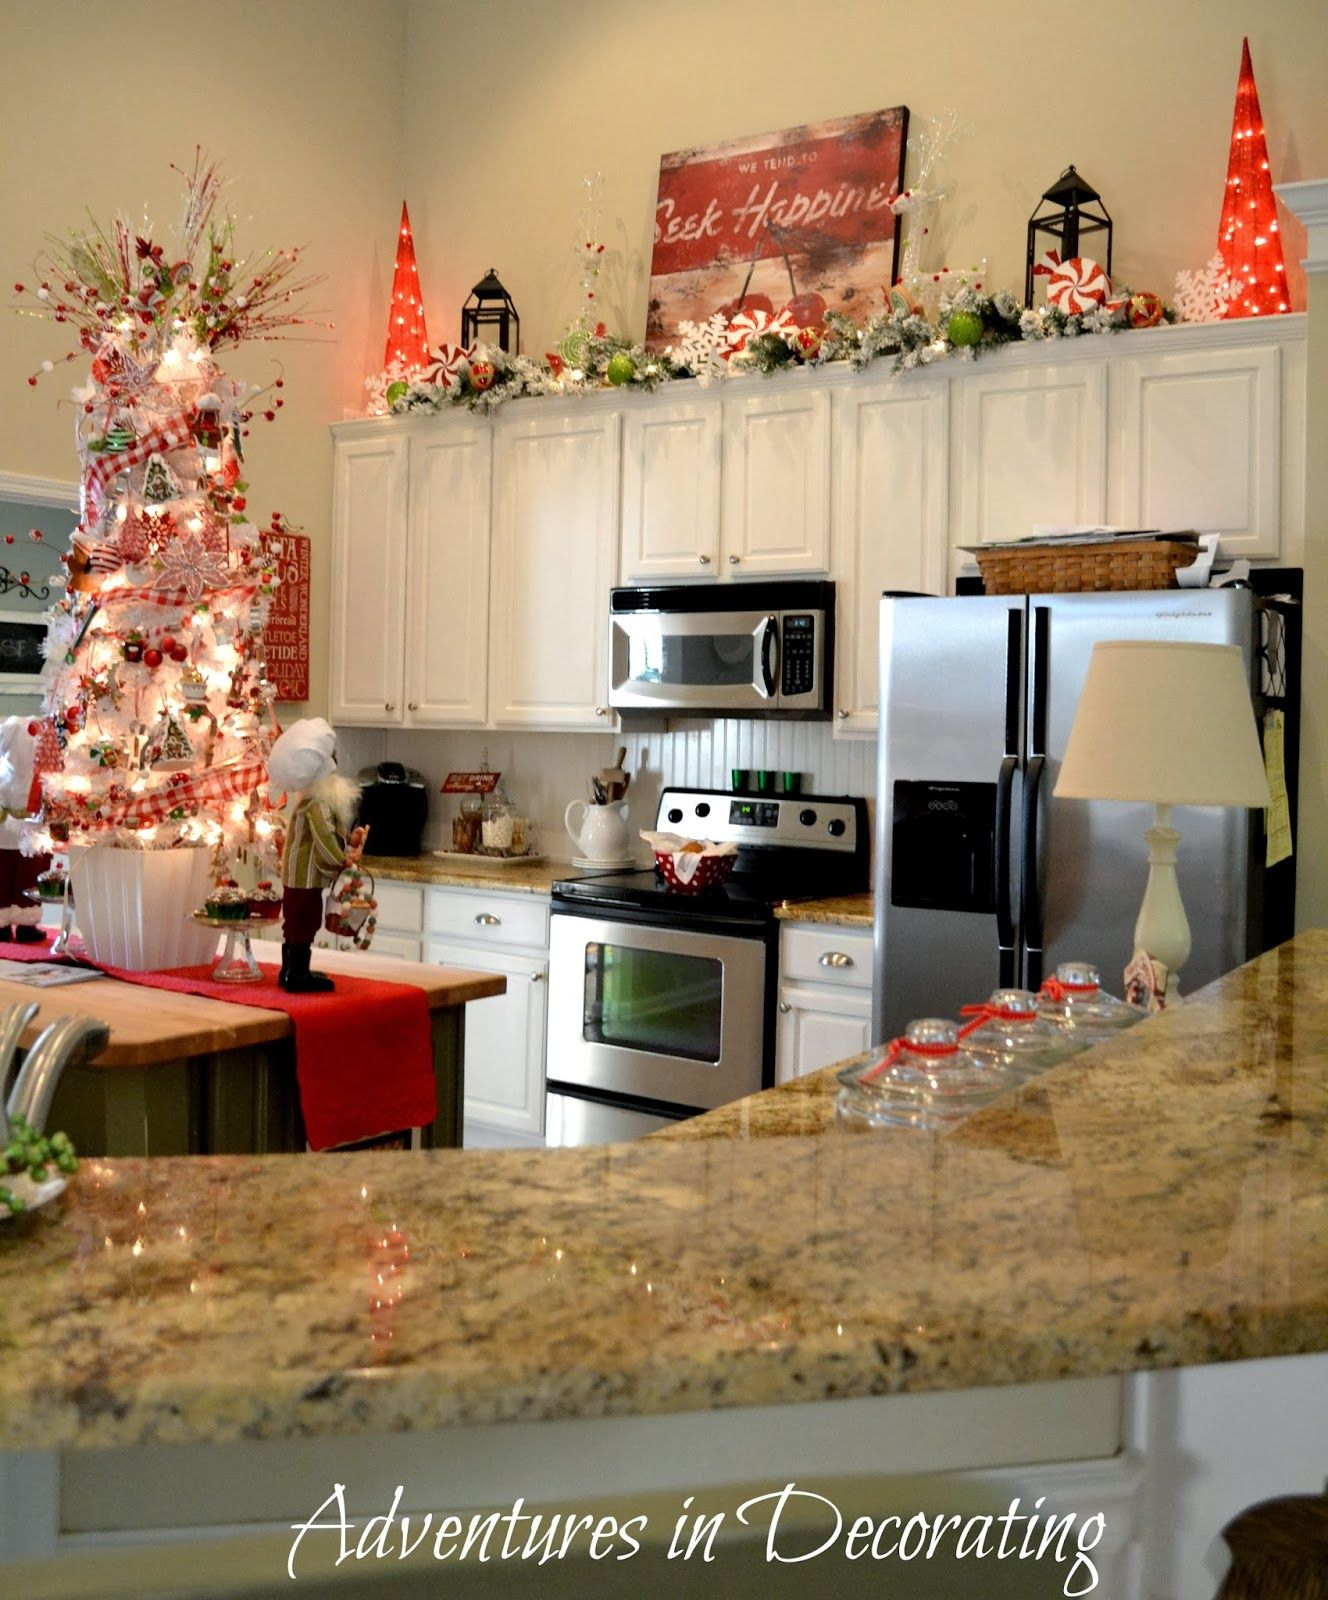 Our Christmas Great Room And Kitchen Christmas Kitchen Decor Christmas Kitchen Decorating Above Kitchen Cabinets